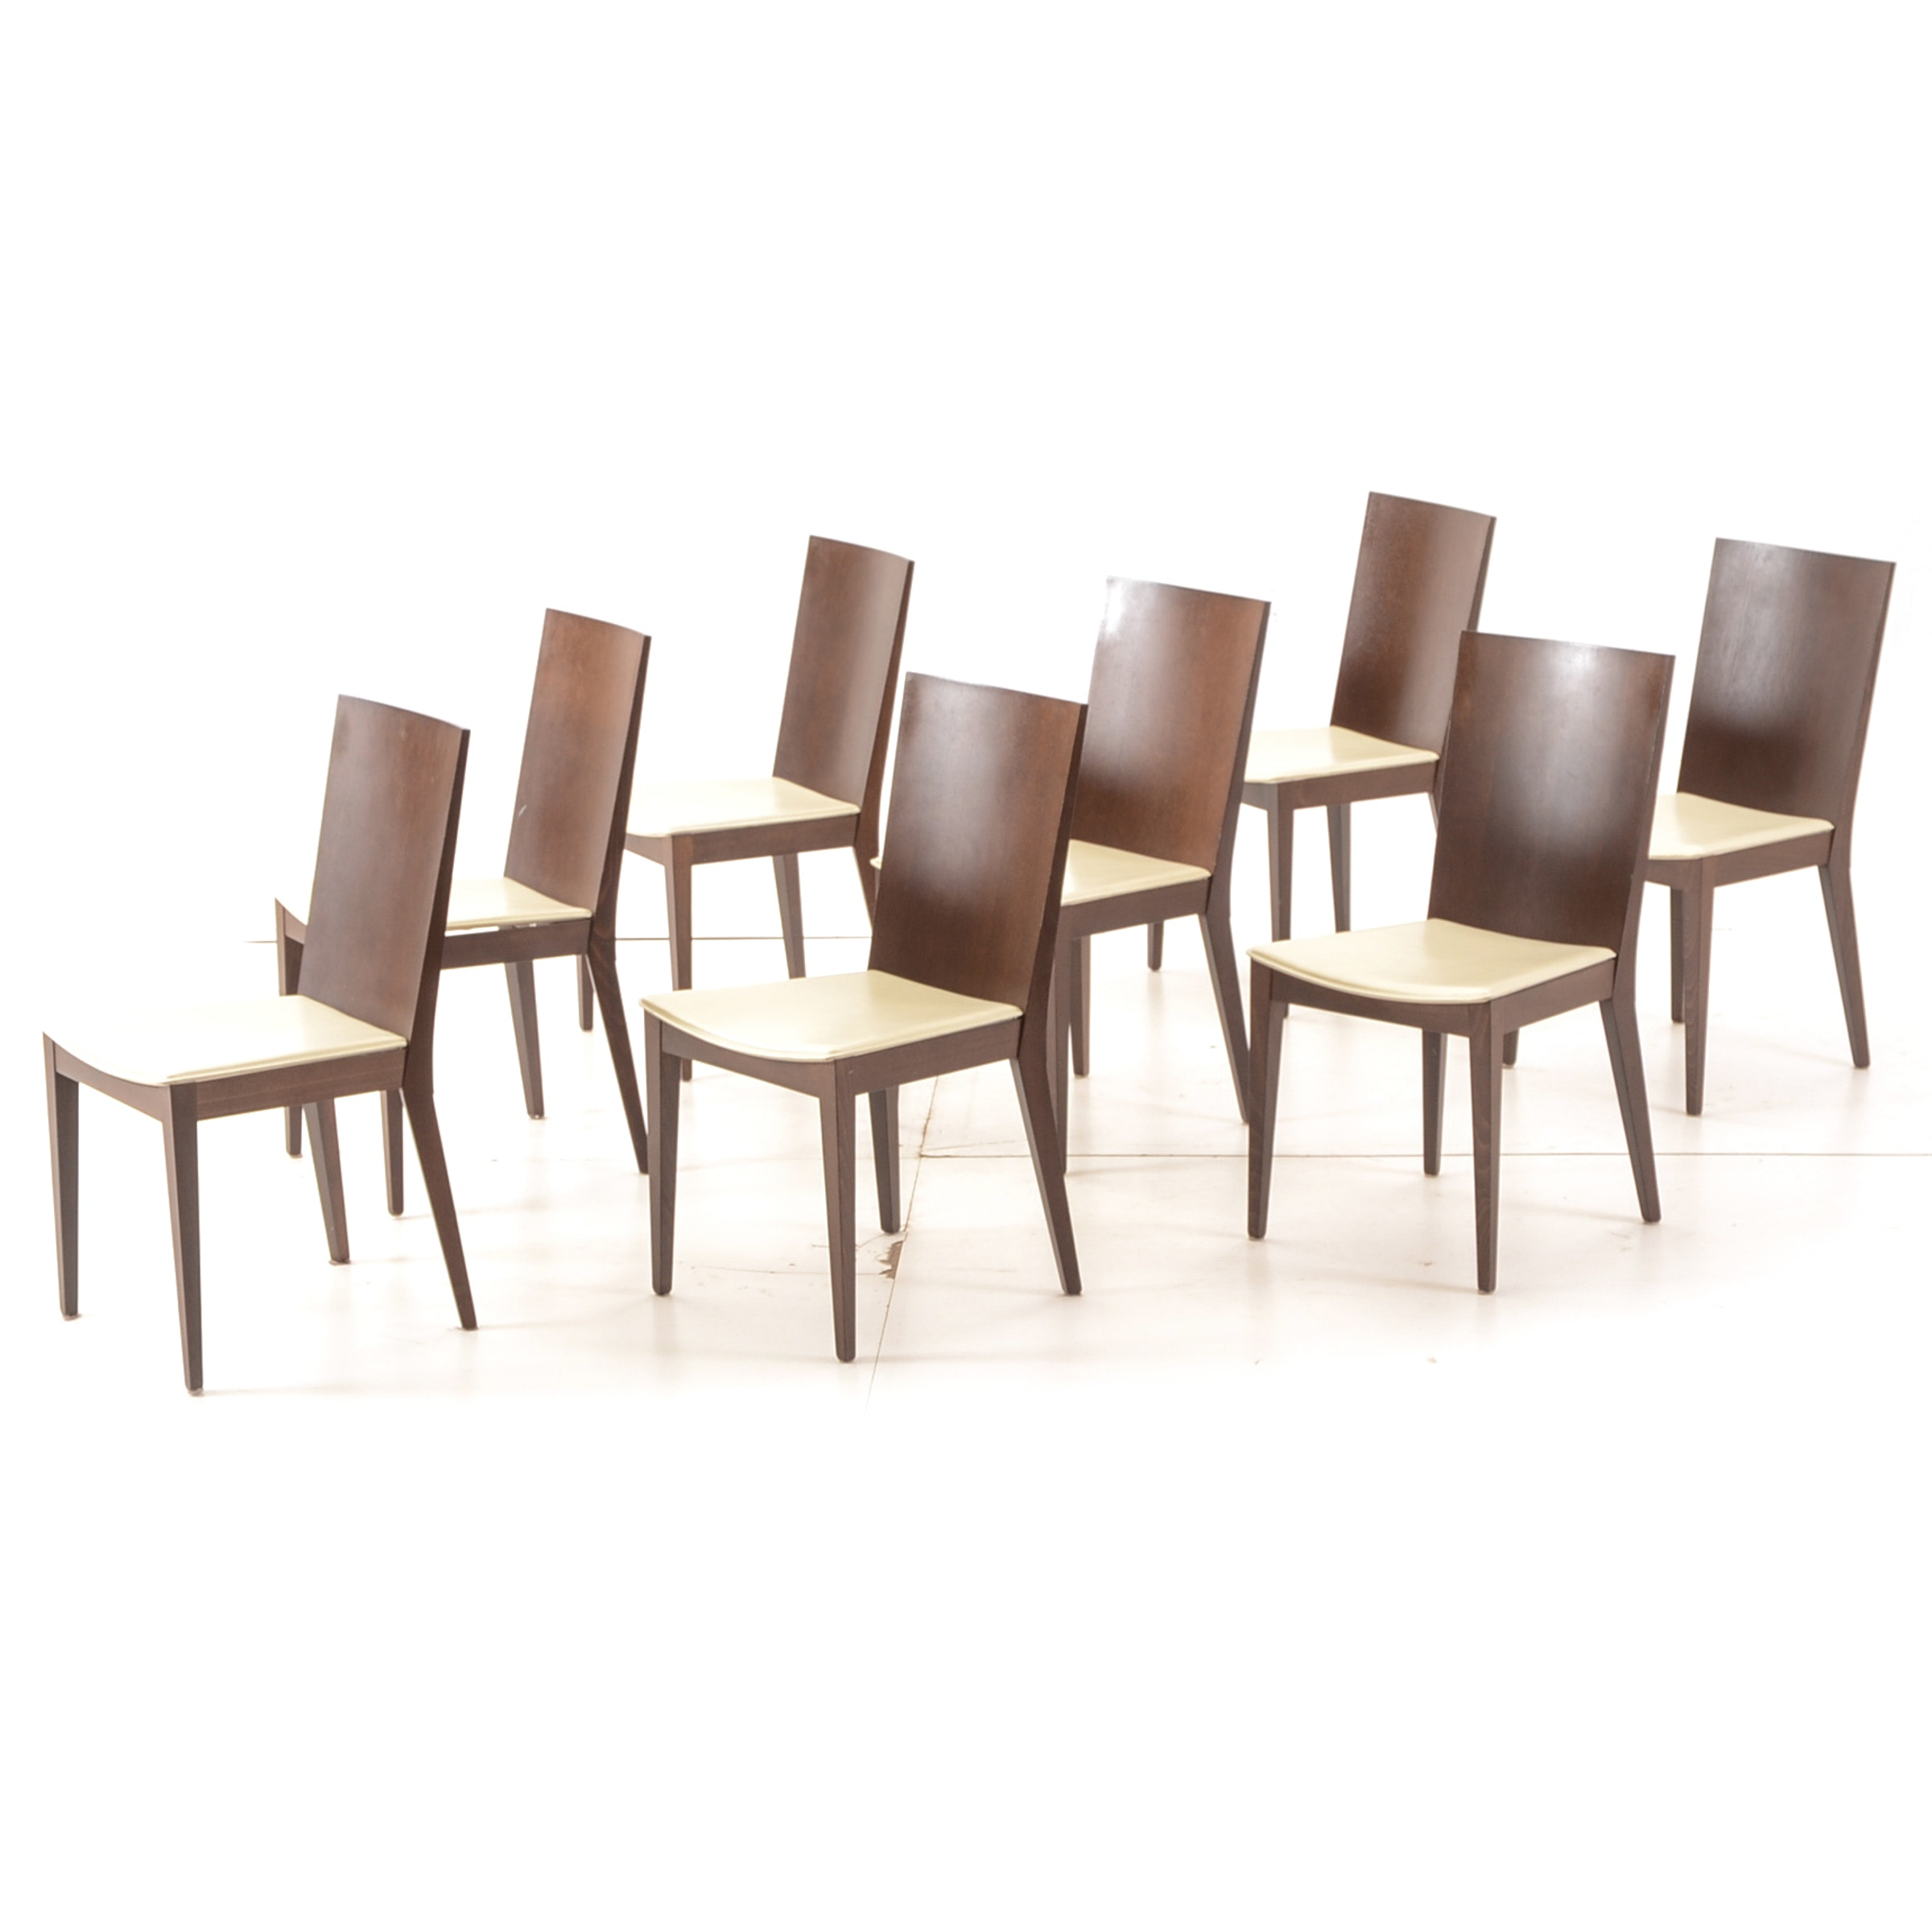 Set of Eight Leather Seated Dining Chairs by Calligaris